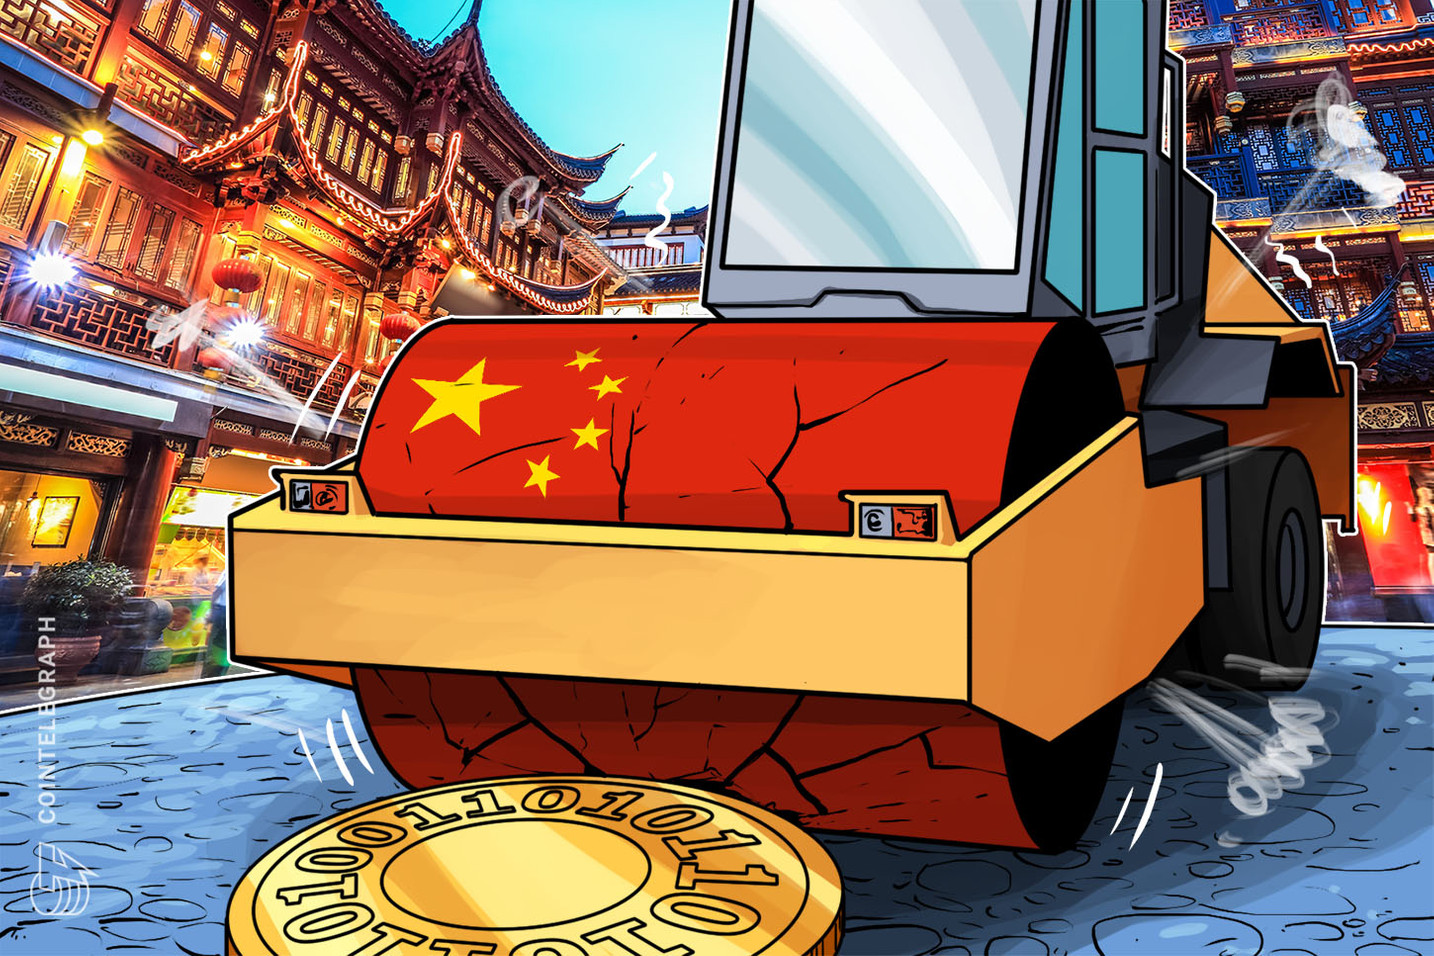 China's Central Bank Extends Its Regulatory Scrutiny to Crypto 'Airdrops'